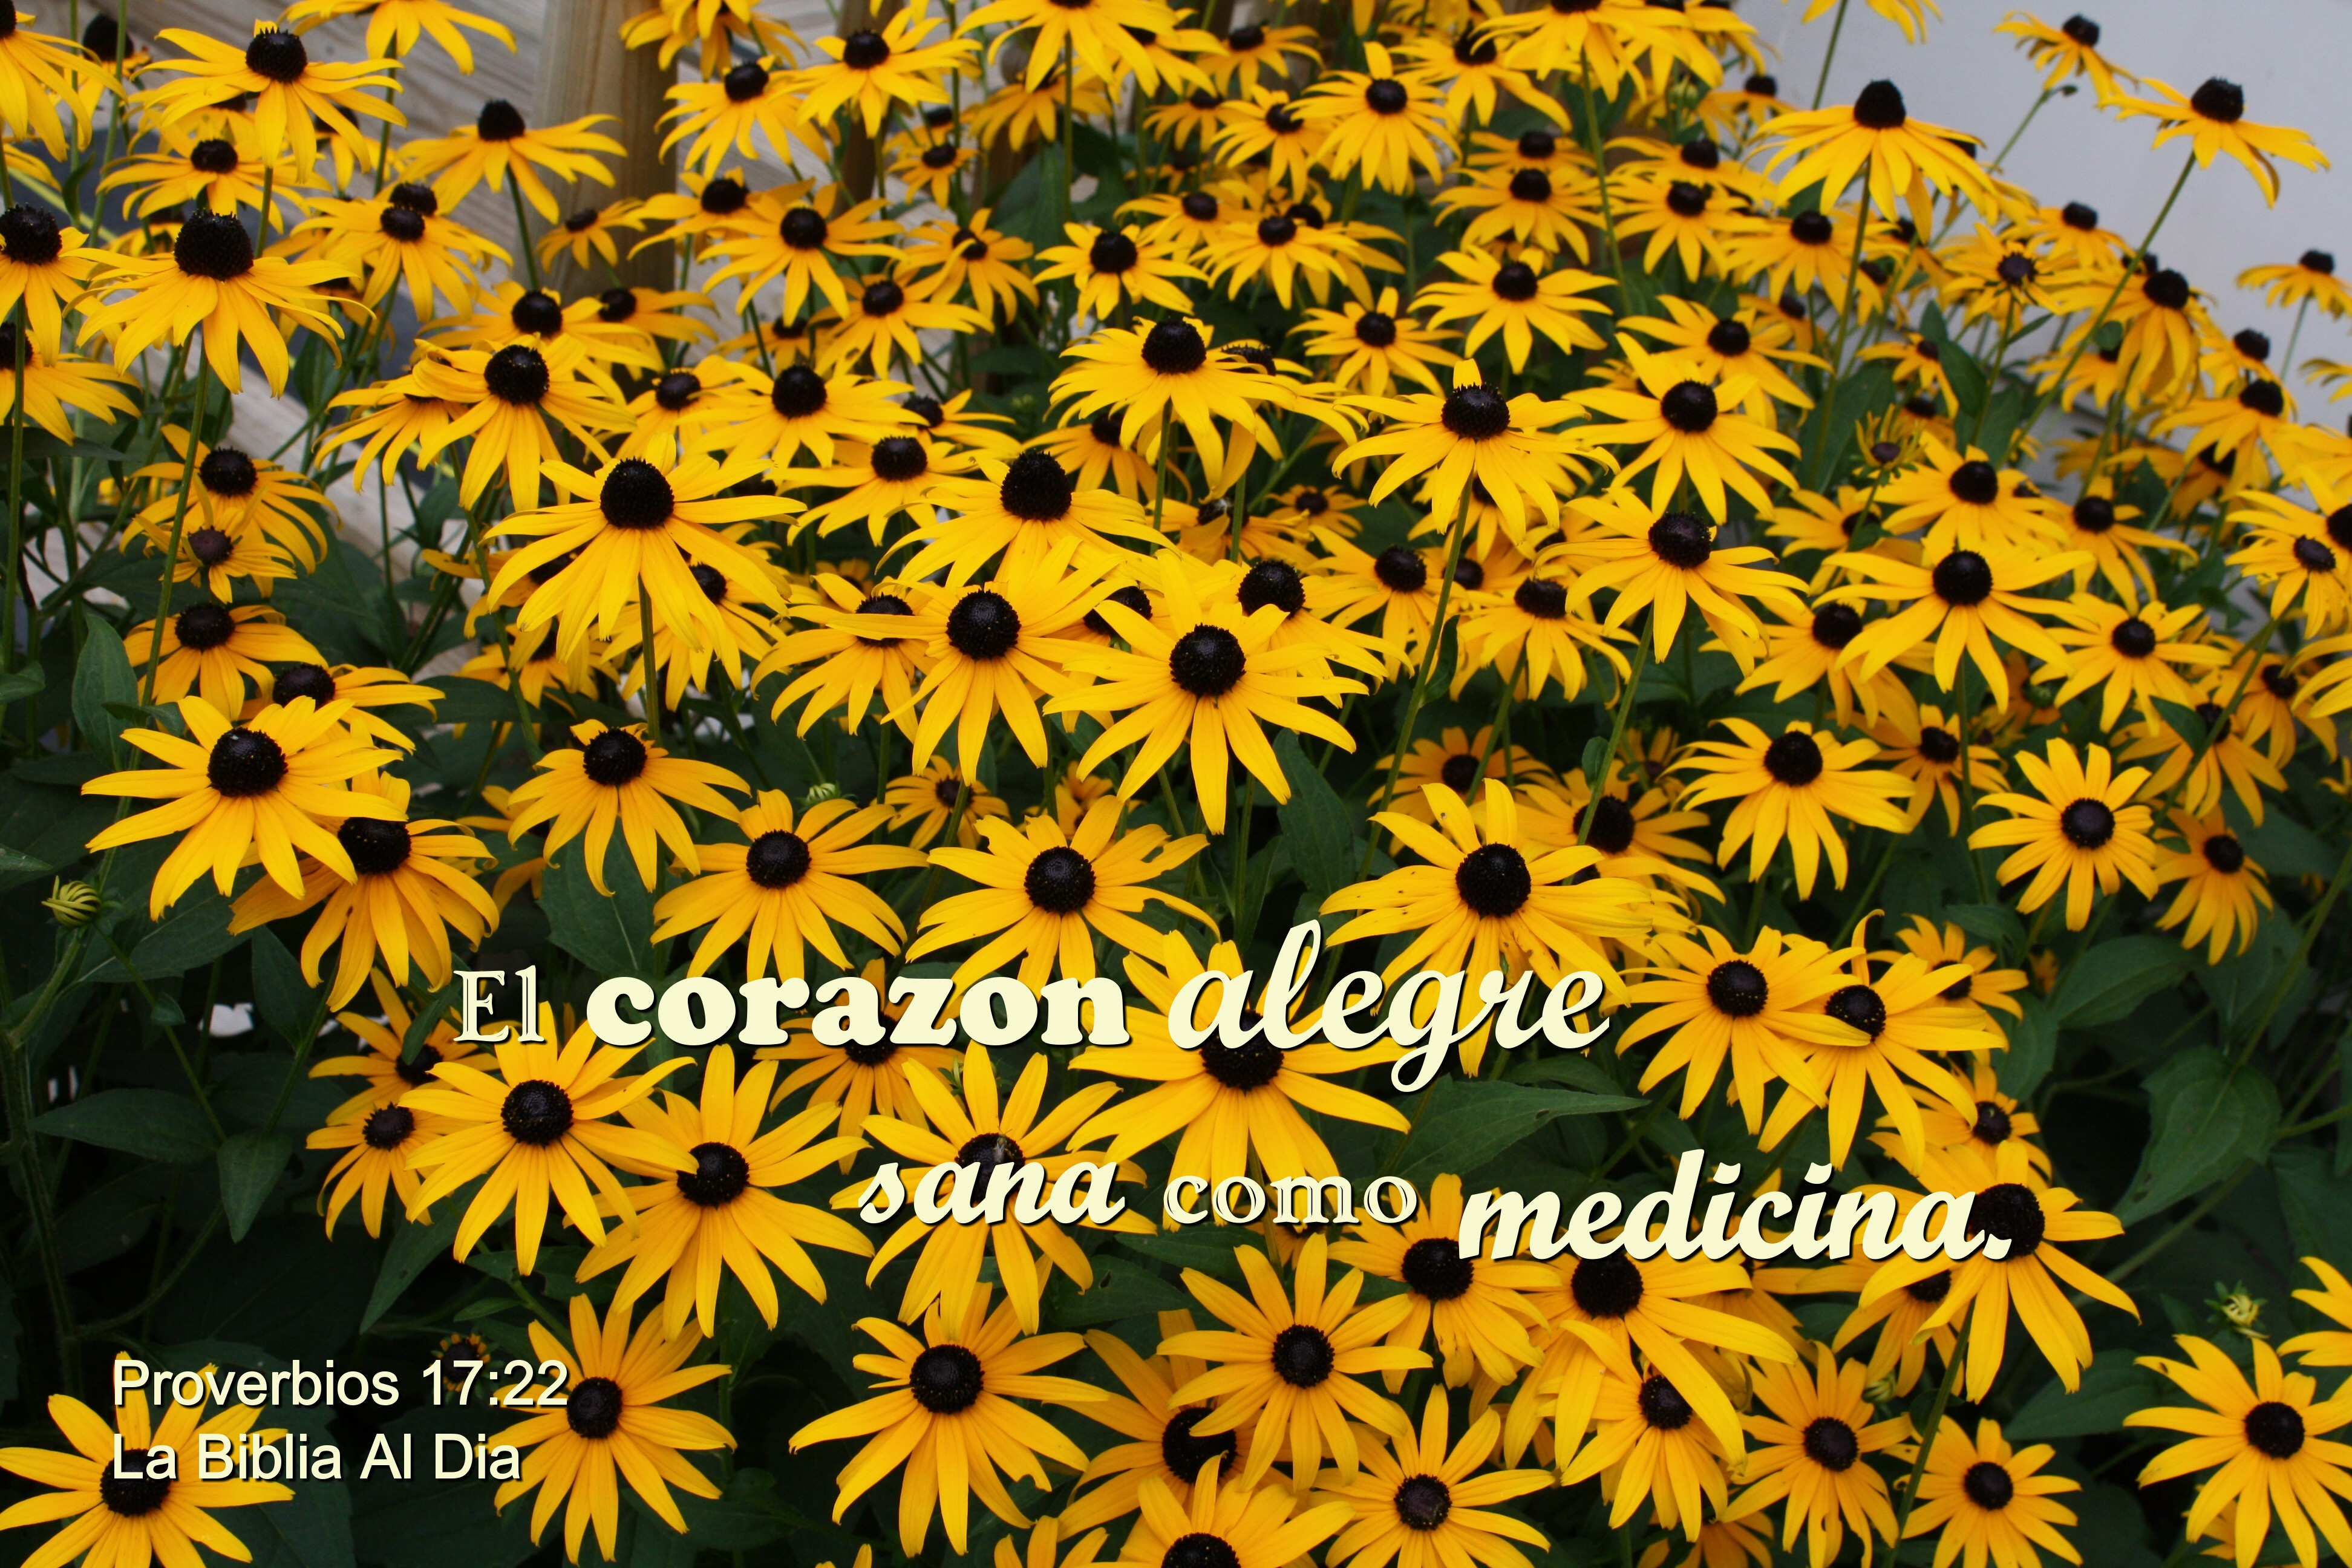 Corazon alegre como medicina photo